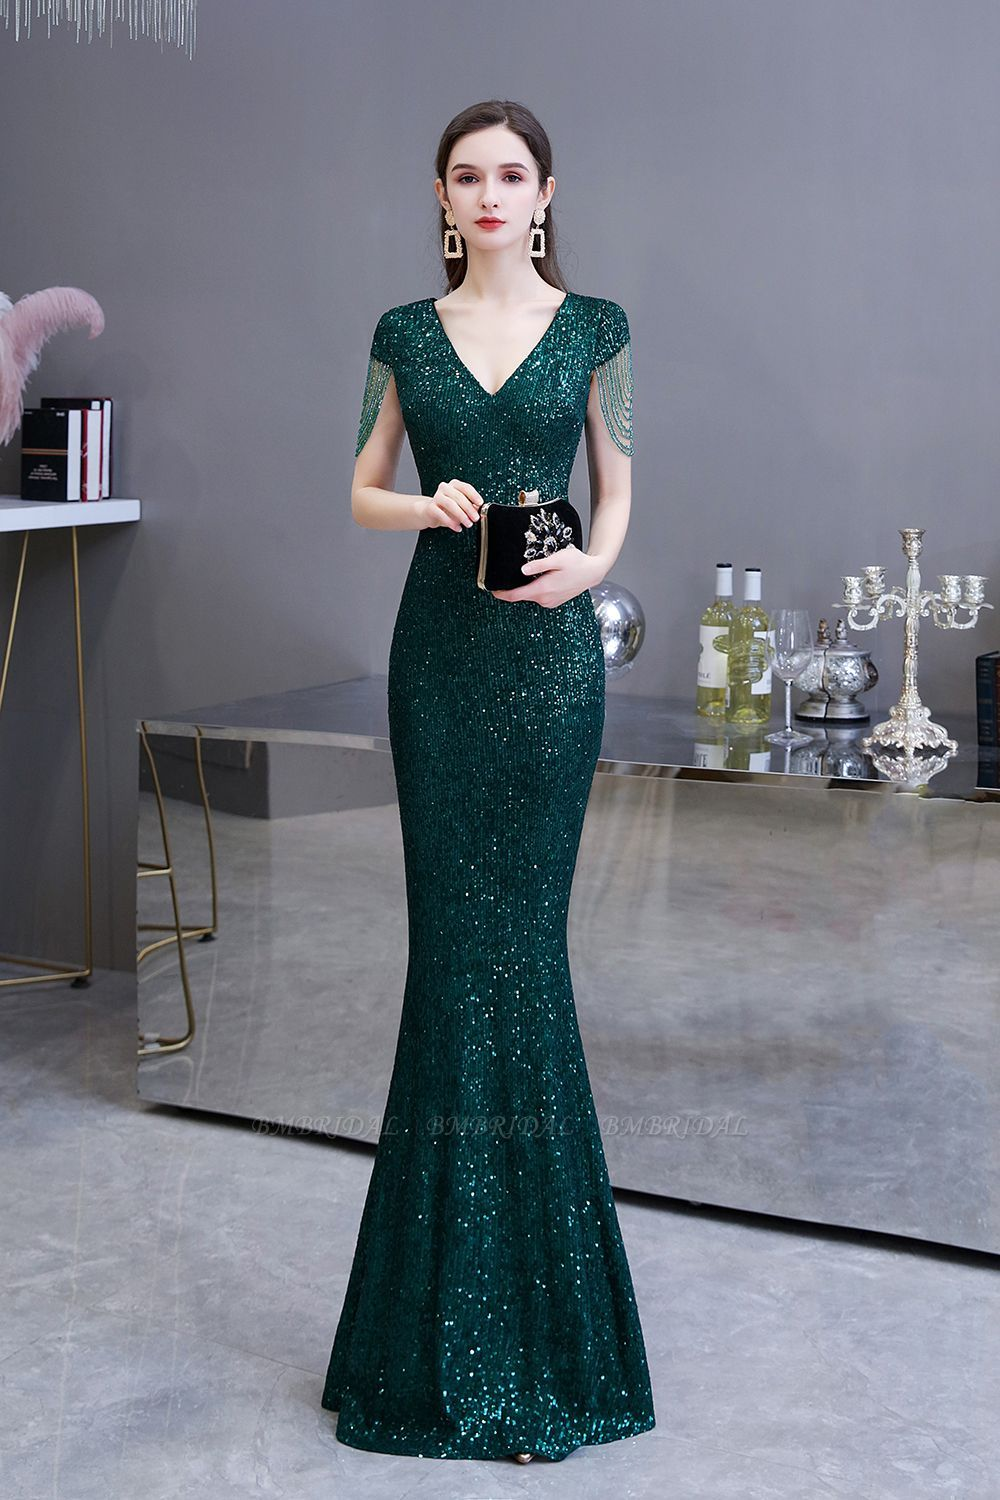 Bmbridal Elegant Cap Sleeve Green Prom Dress Sequins Long Evening Gowns Online In 2021 Green Prom Dress Green Prom Dress Long Prom Dresses Long With Sleeves [ 1500 x 1000 Pixel ]